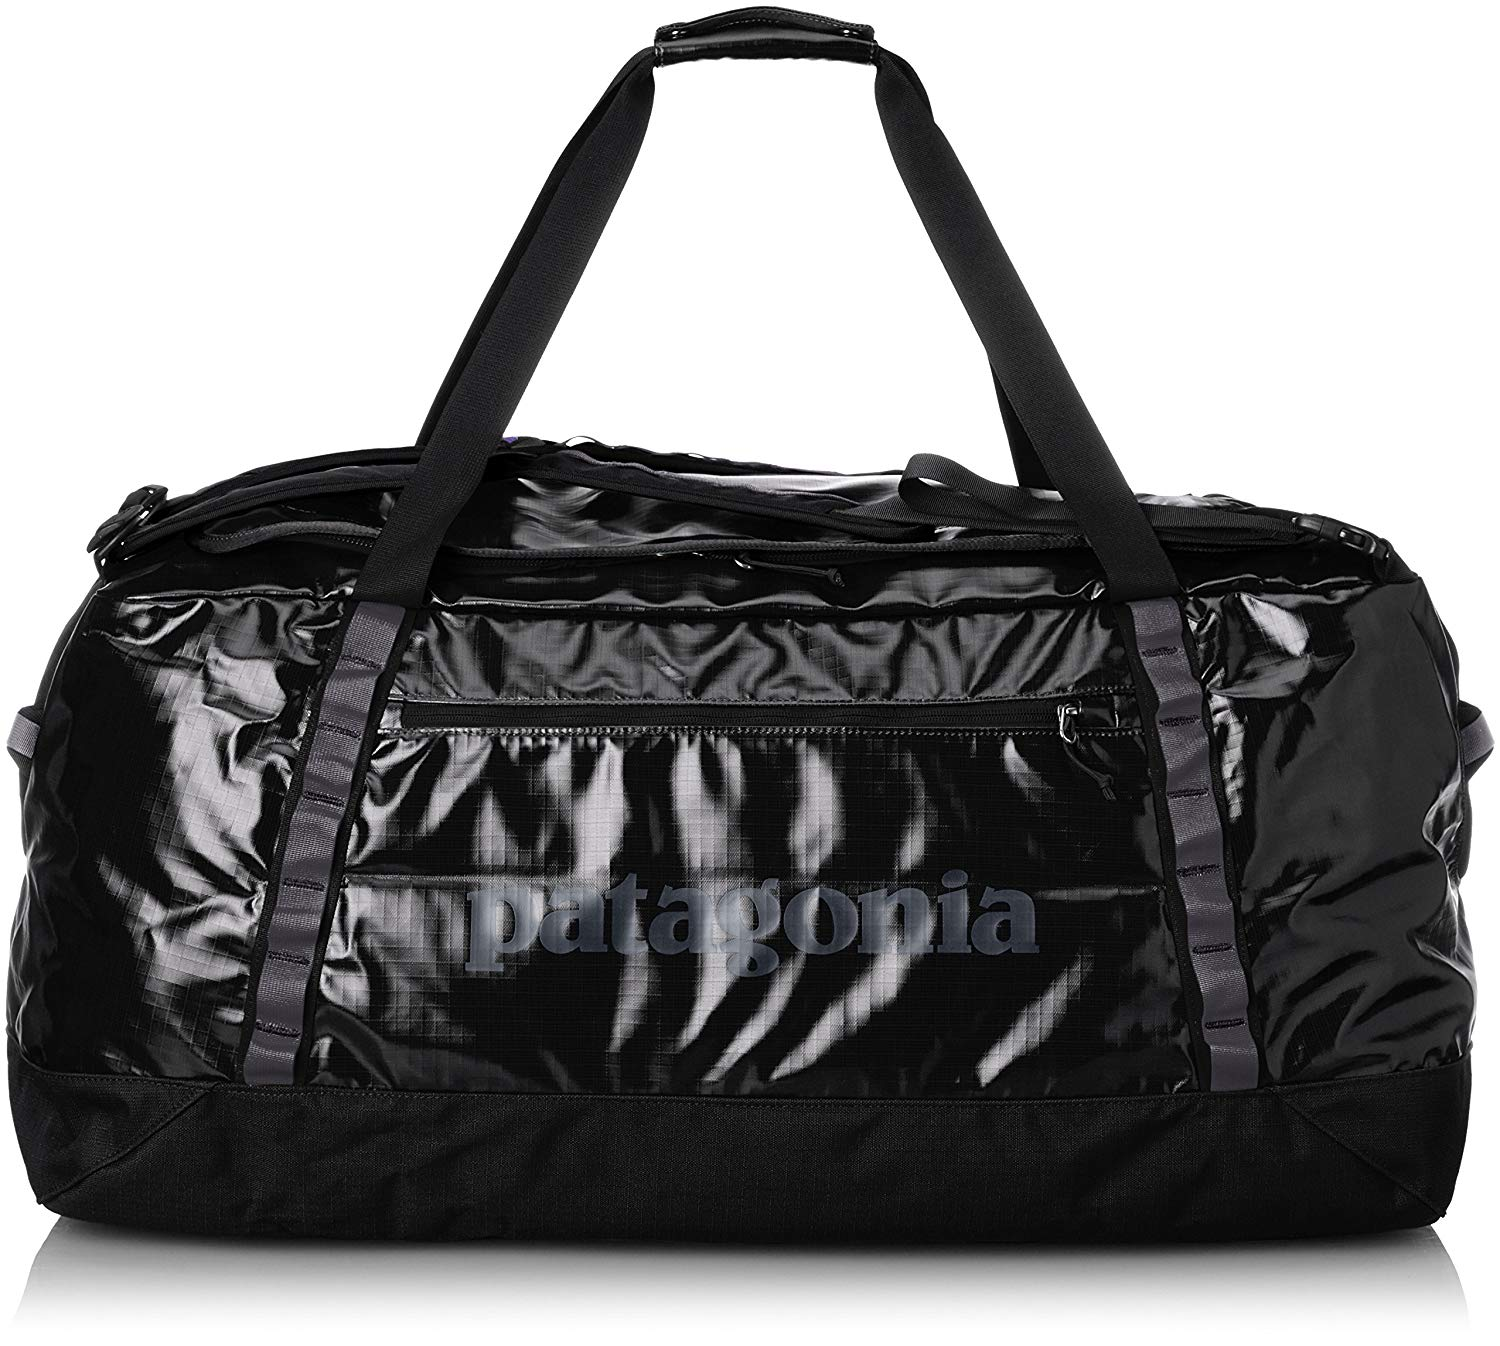 road trip essentials duffel bag